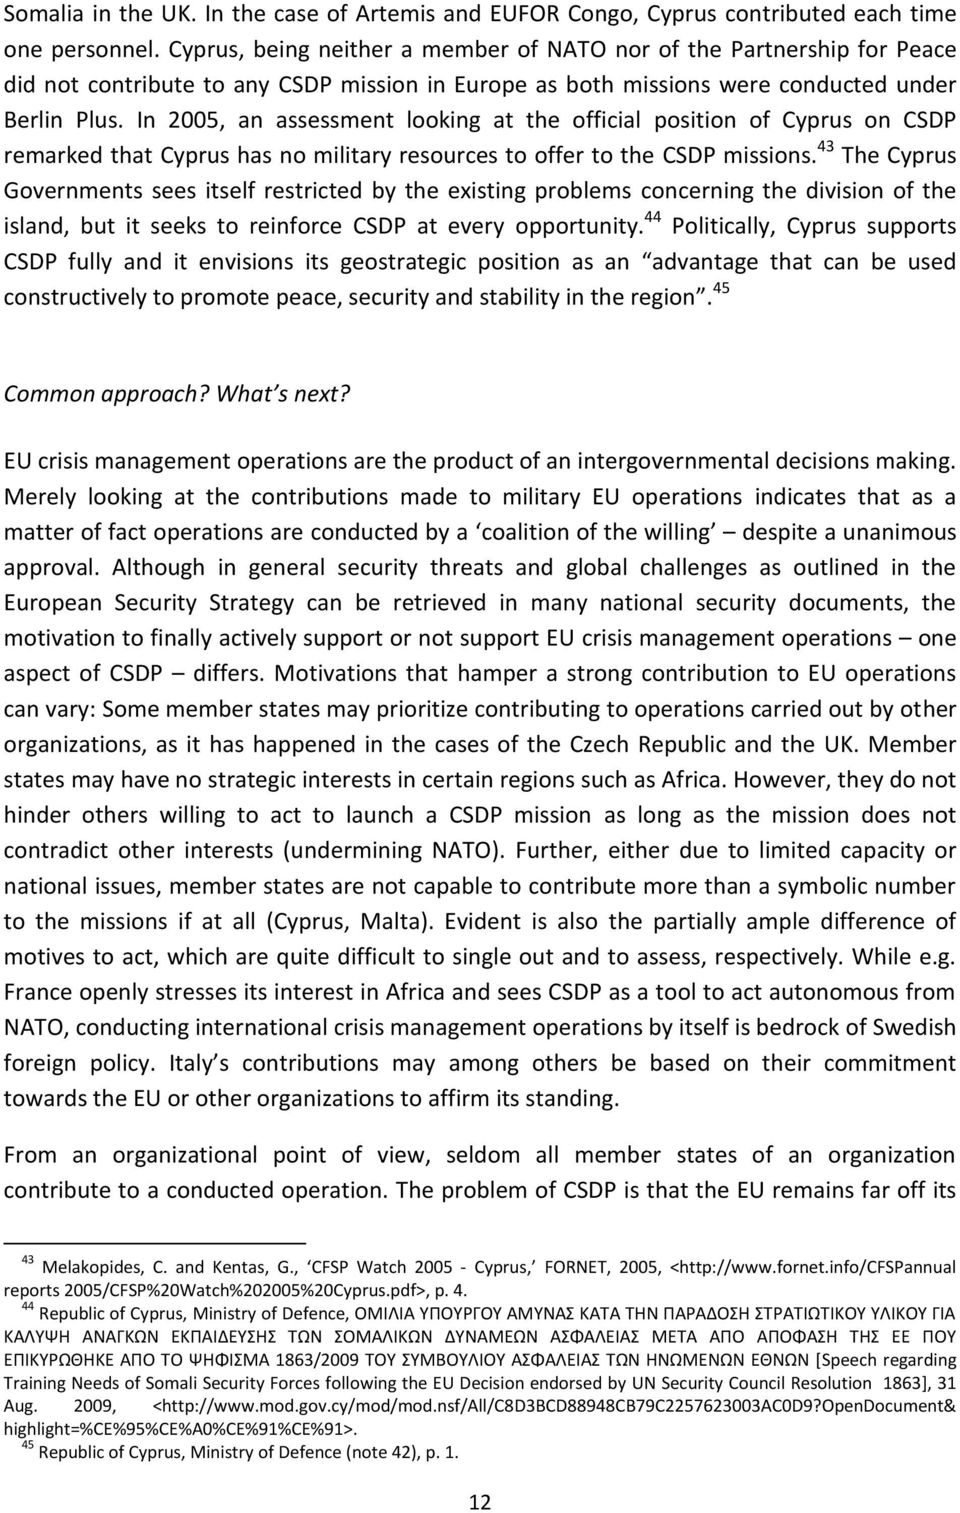 In 2005, an assessment looking at the official position of Cyprus on CSDP remarked that Cyprus has no military resources to offer to the CSDP missions.